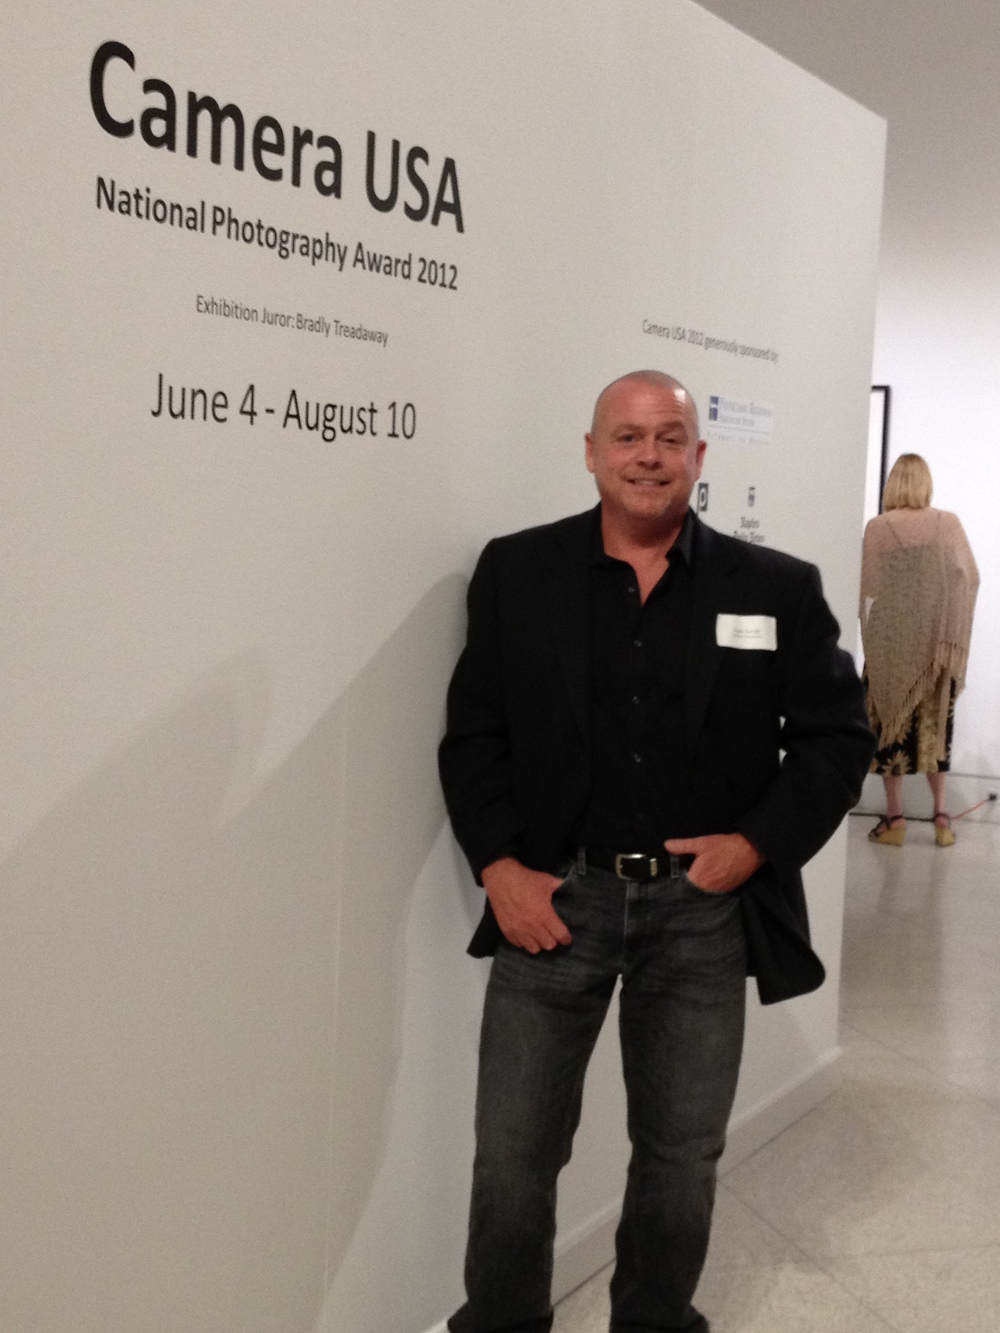 Camera USA: National Photography Award 2012, von Liebig Art Center, Naples, Florida - June 4 to August 10, 2012